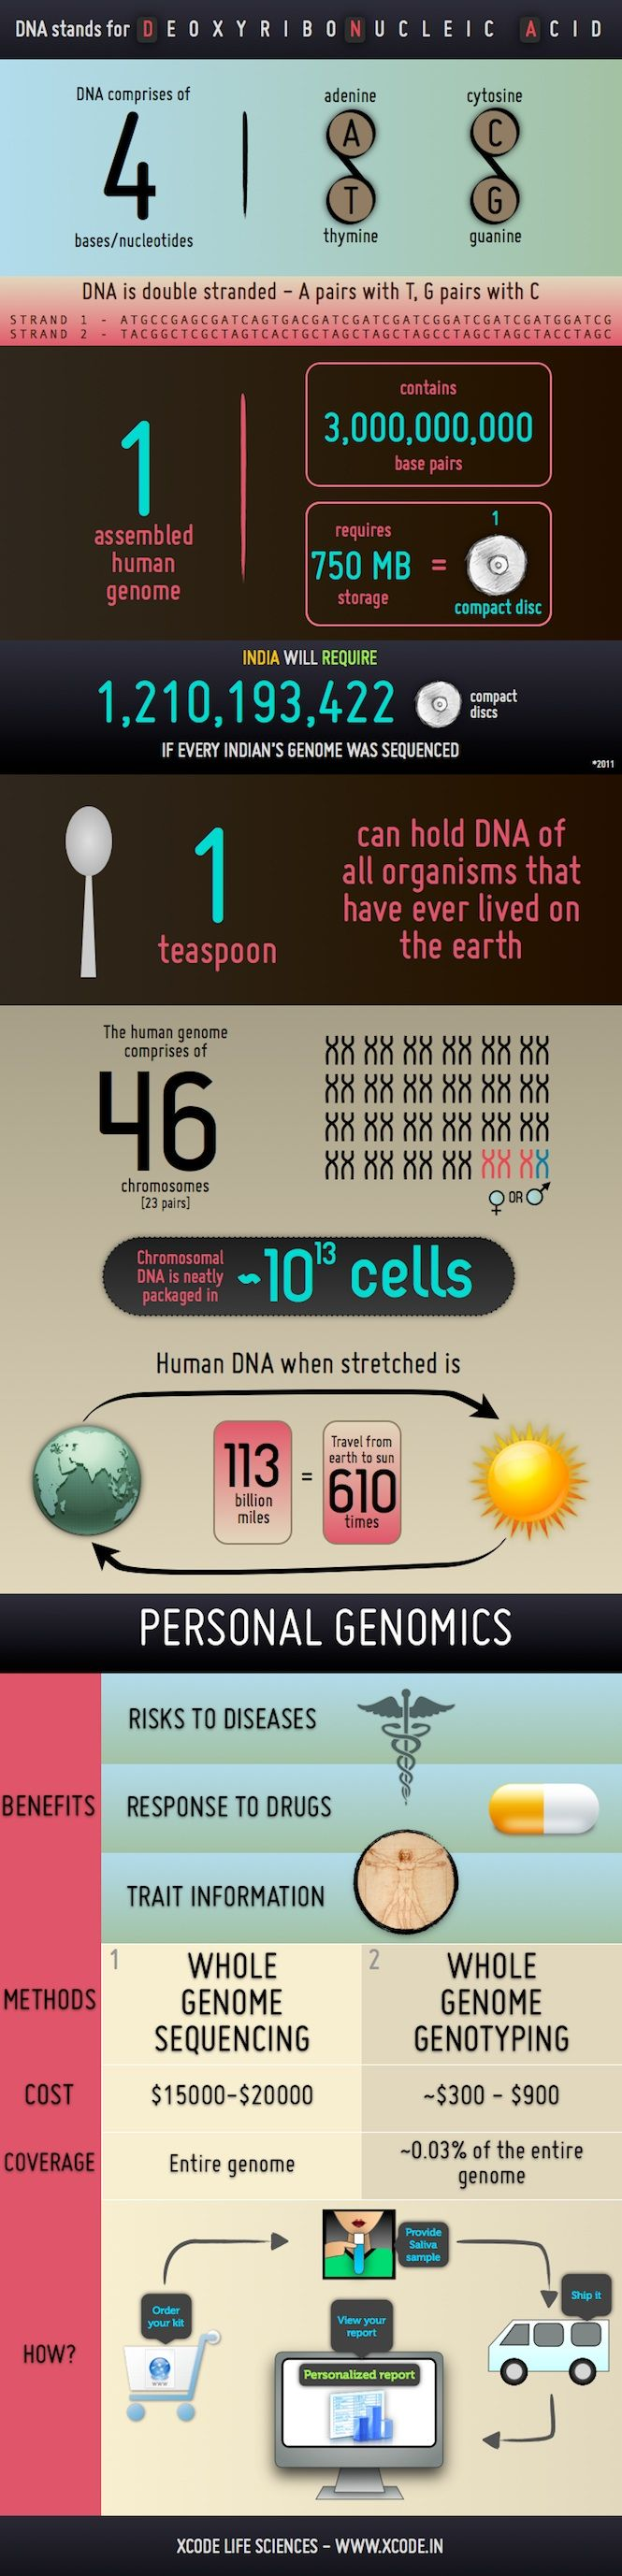 A graphic on DNA (Deoxyribonucleic Acid), human genome and personal genomics.